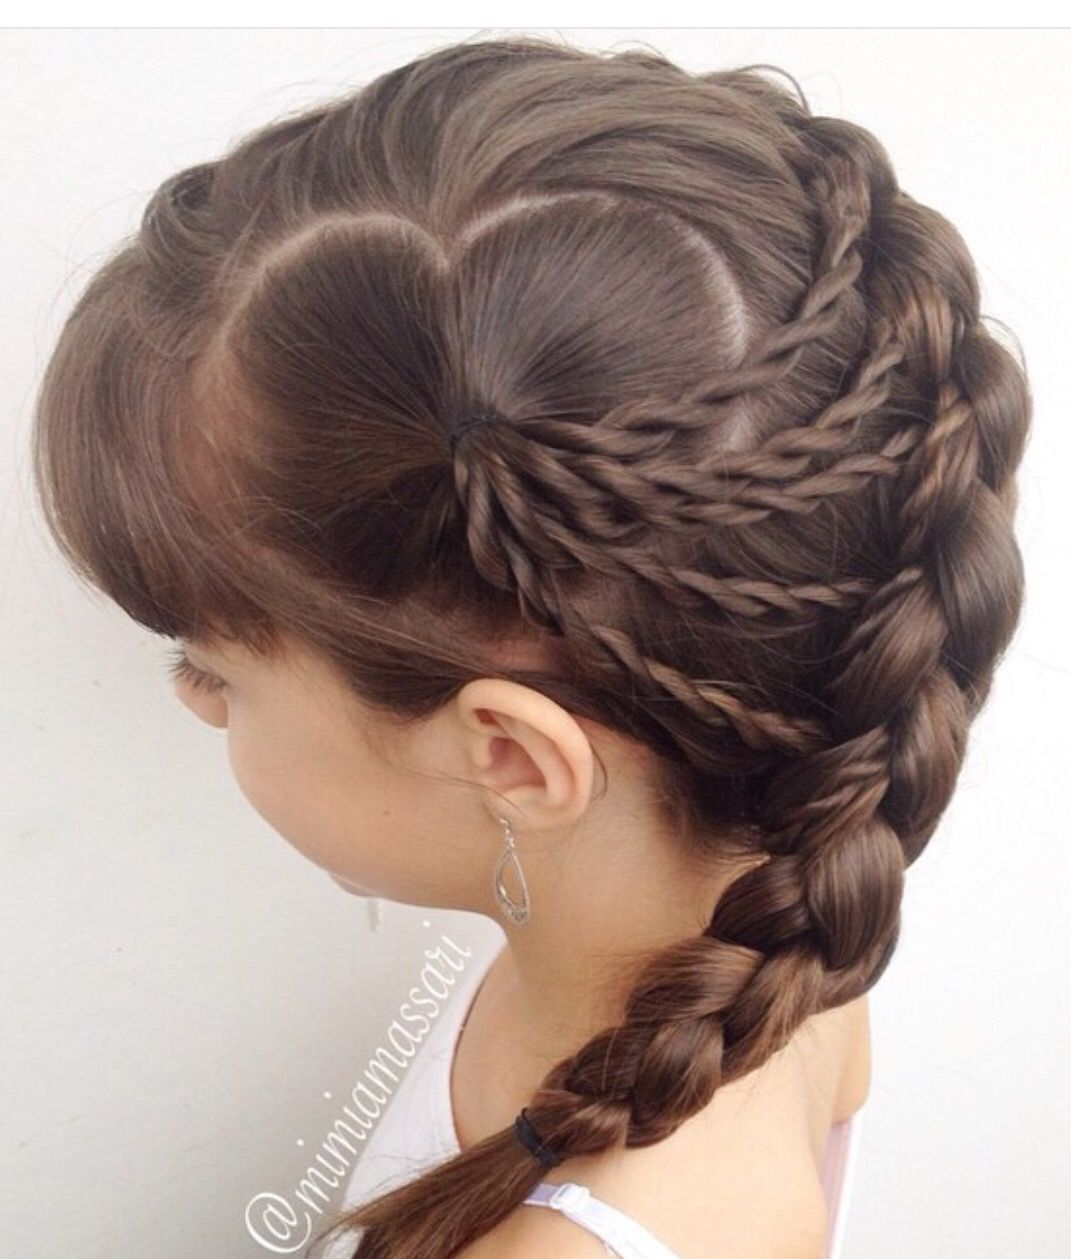 Really cute hairstyle for kids and valentines holiday